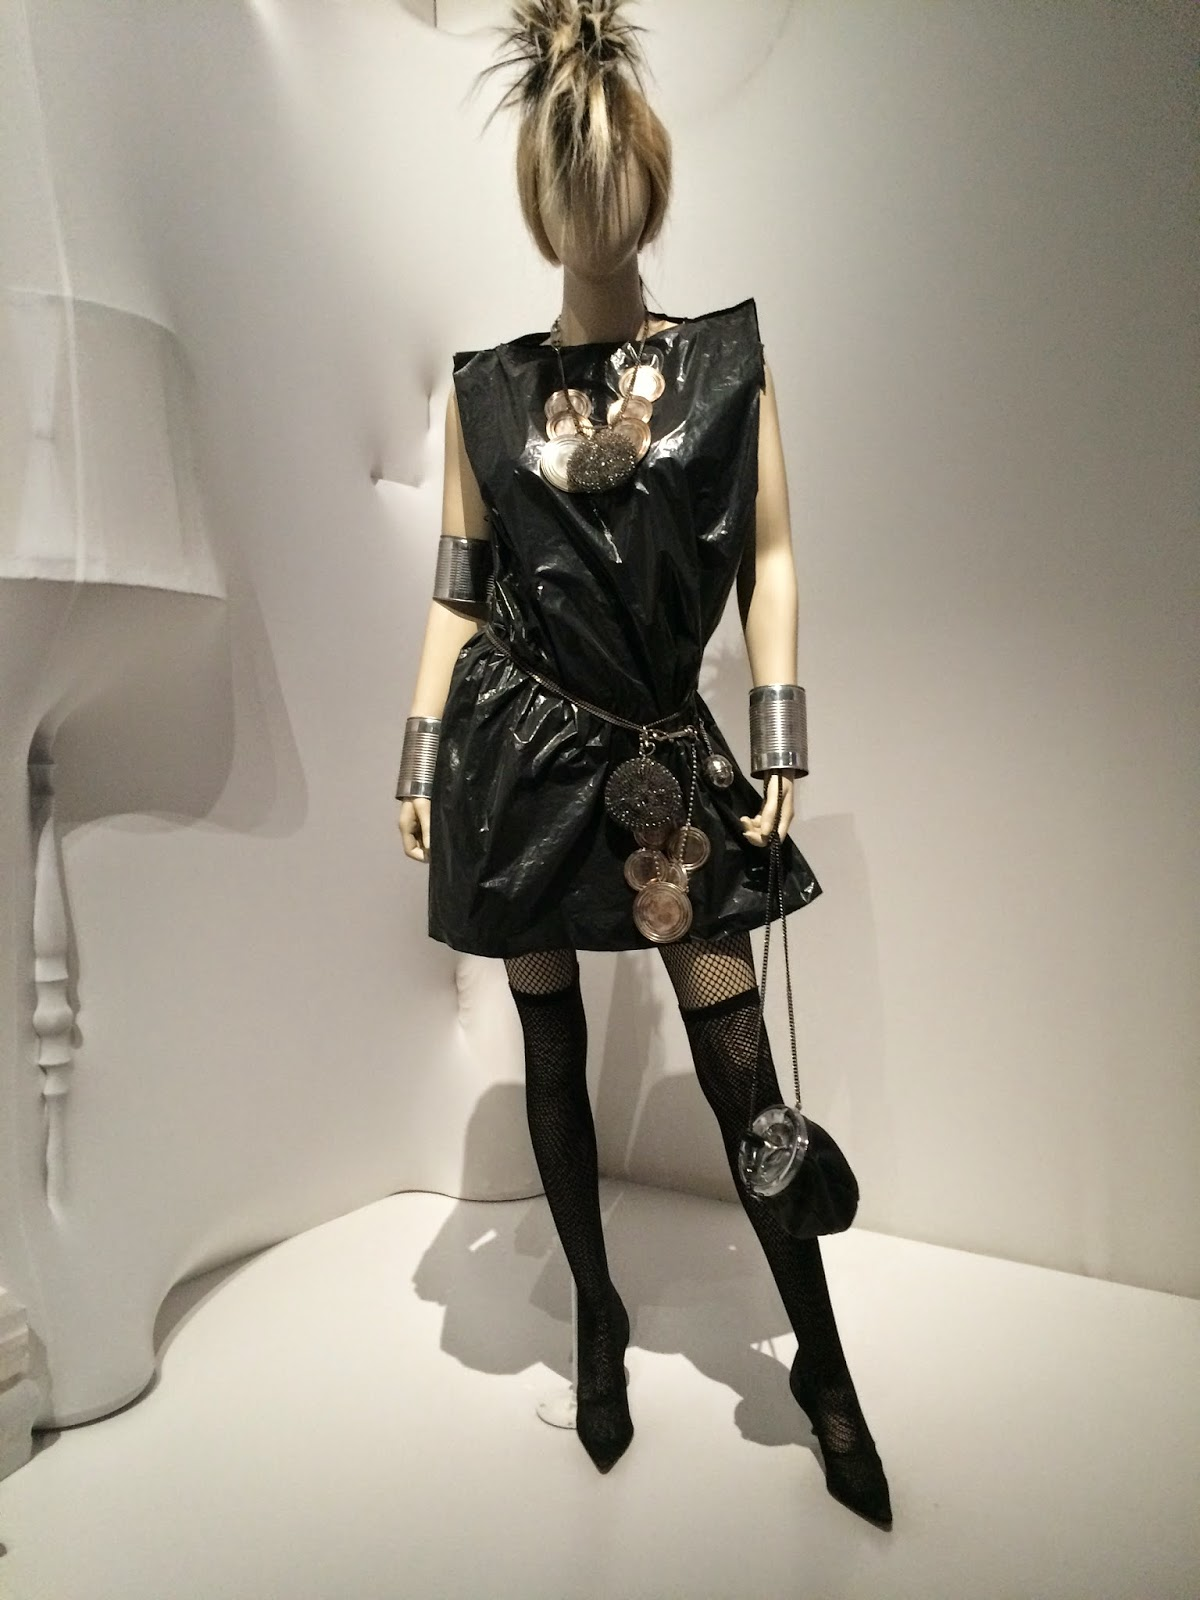 Garbage bag dress by Jean Paul Gaultier, Le Grand Palais, Paris